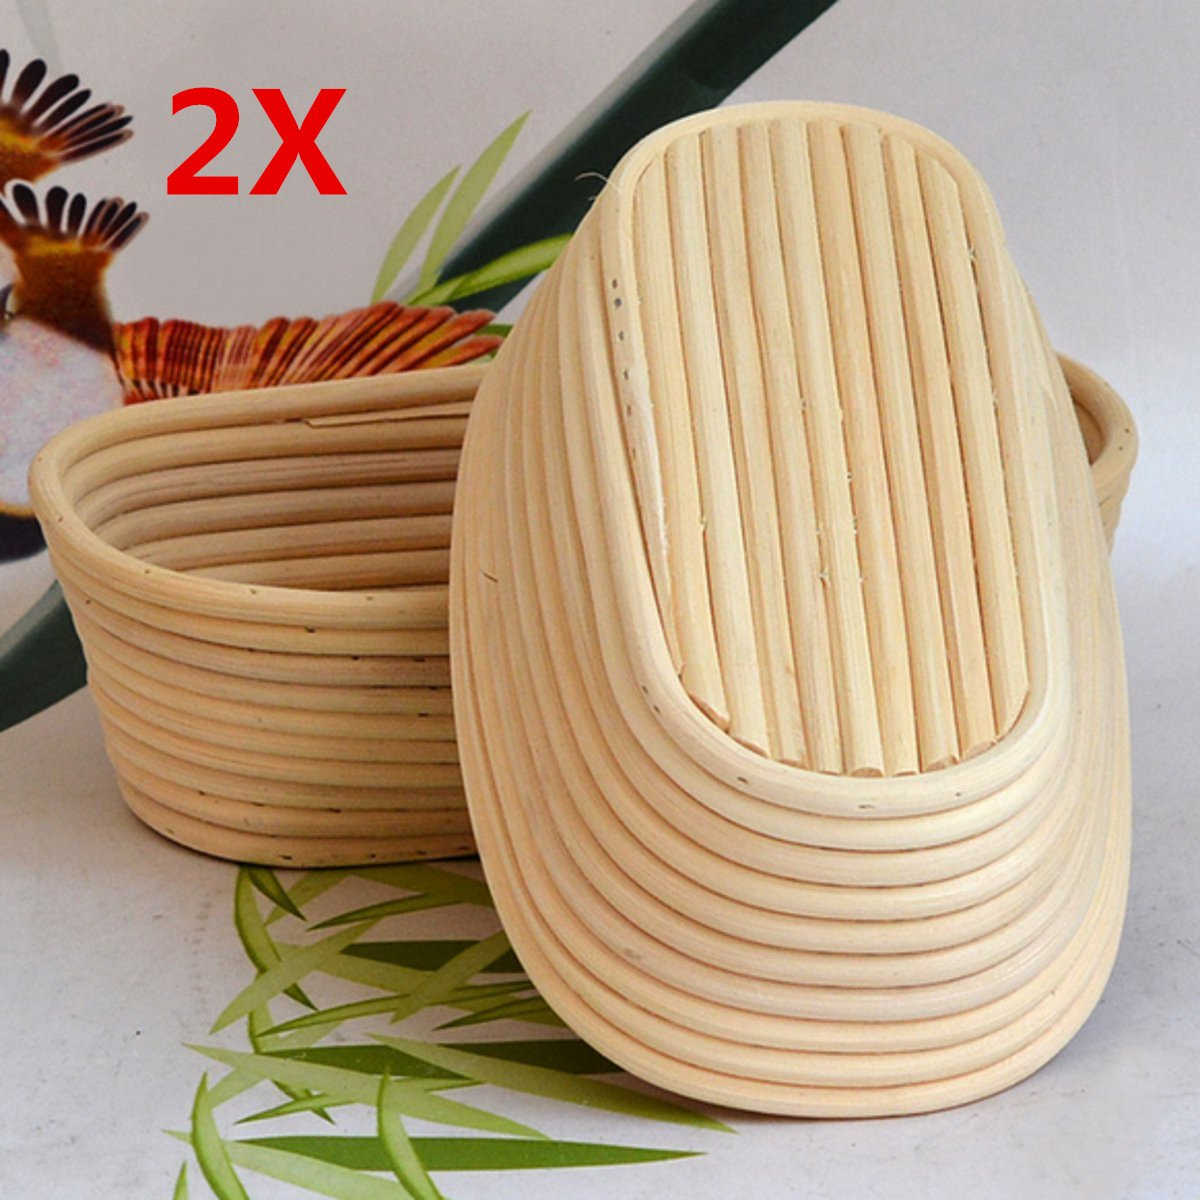 Jeteven 11 inch Banneton Bread Proofing Basket with Liner, Oval Perfect Brotform Proofing Rattan Basket for Making Beautiful Bread, Pack of 2